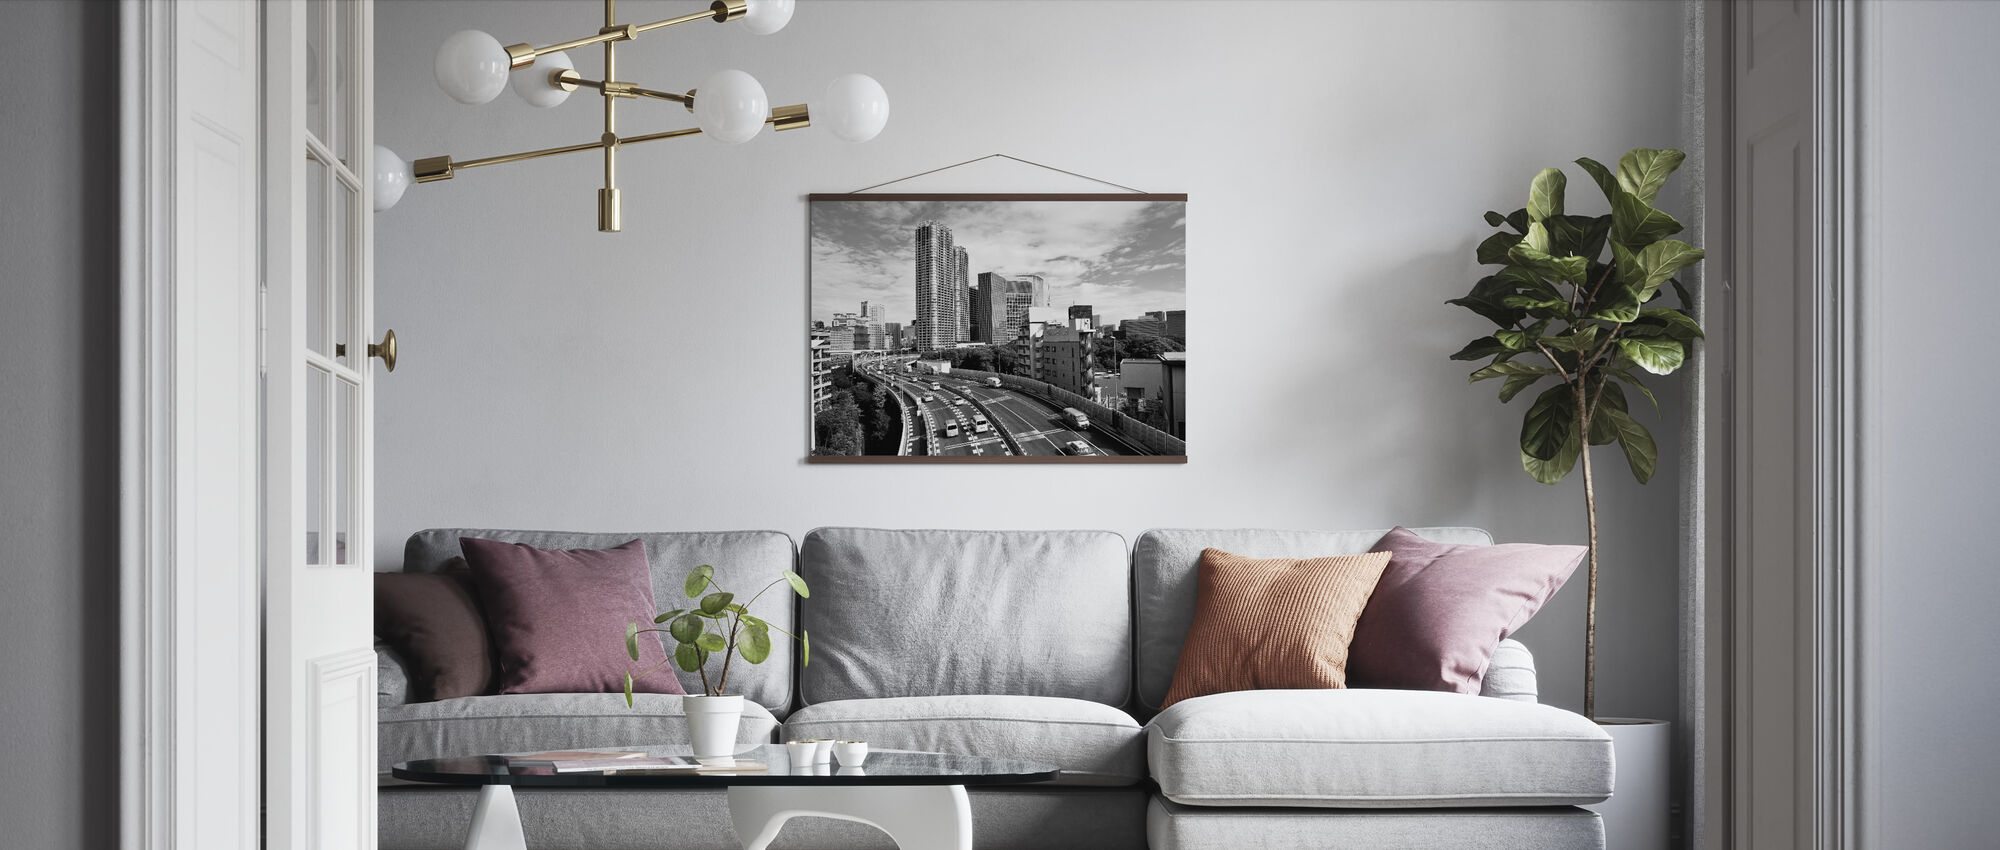 Passing Over the Expressway in the Sunny Morning - Poster - Living Room